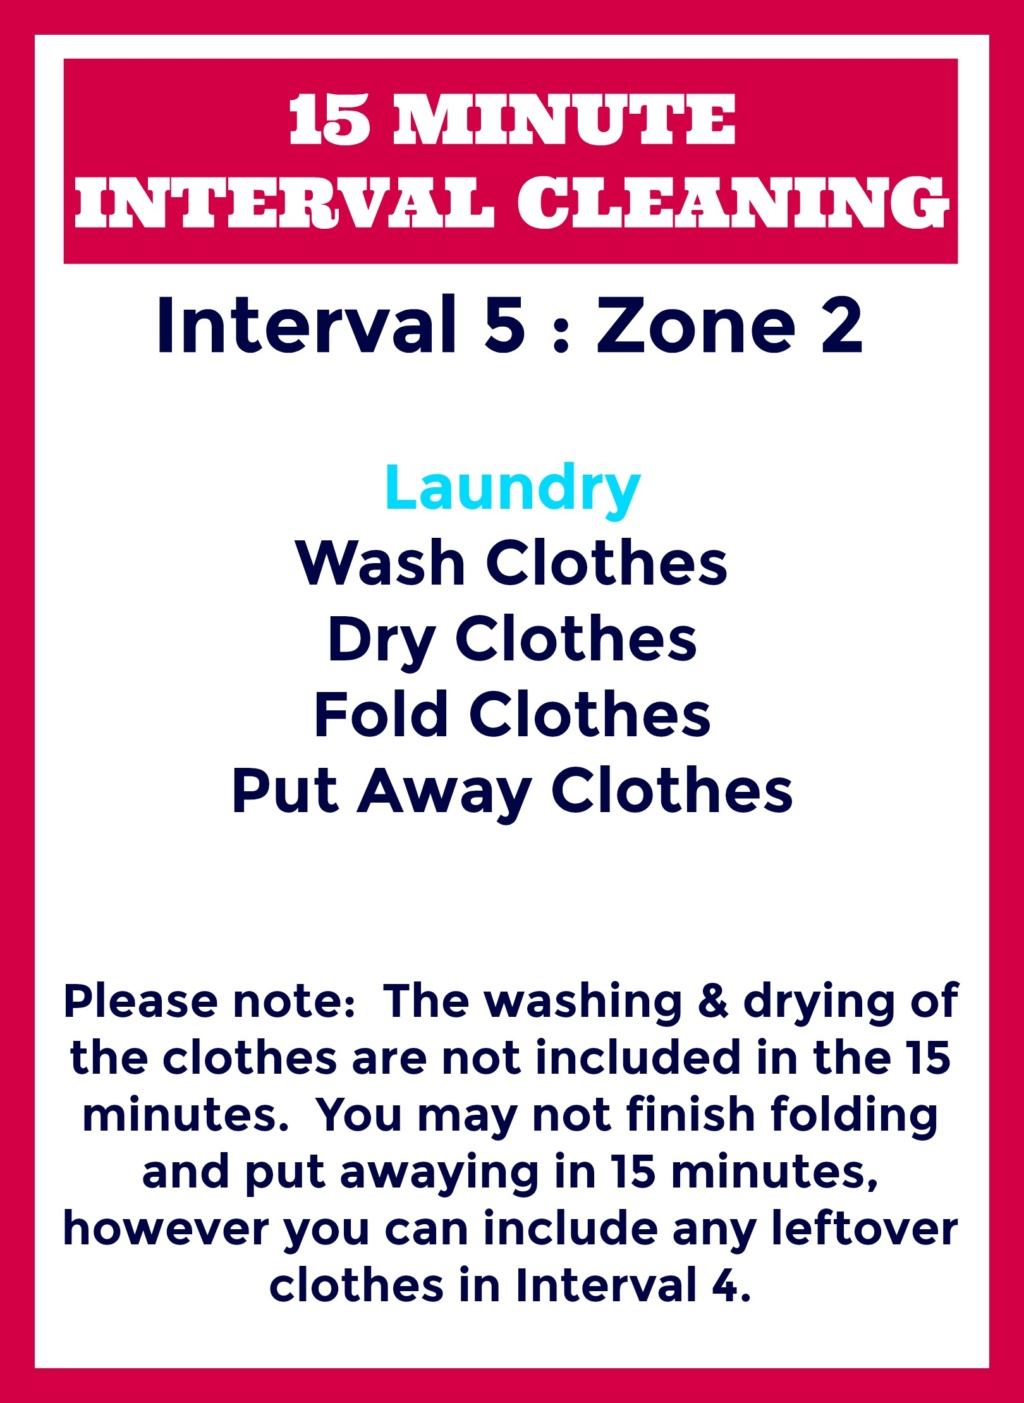 15 Minute Interval Cleaning